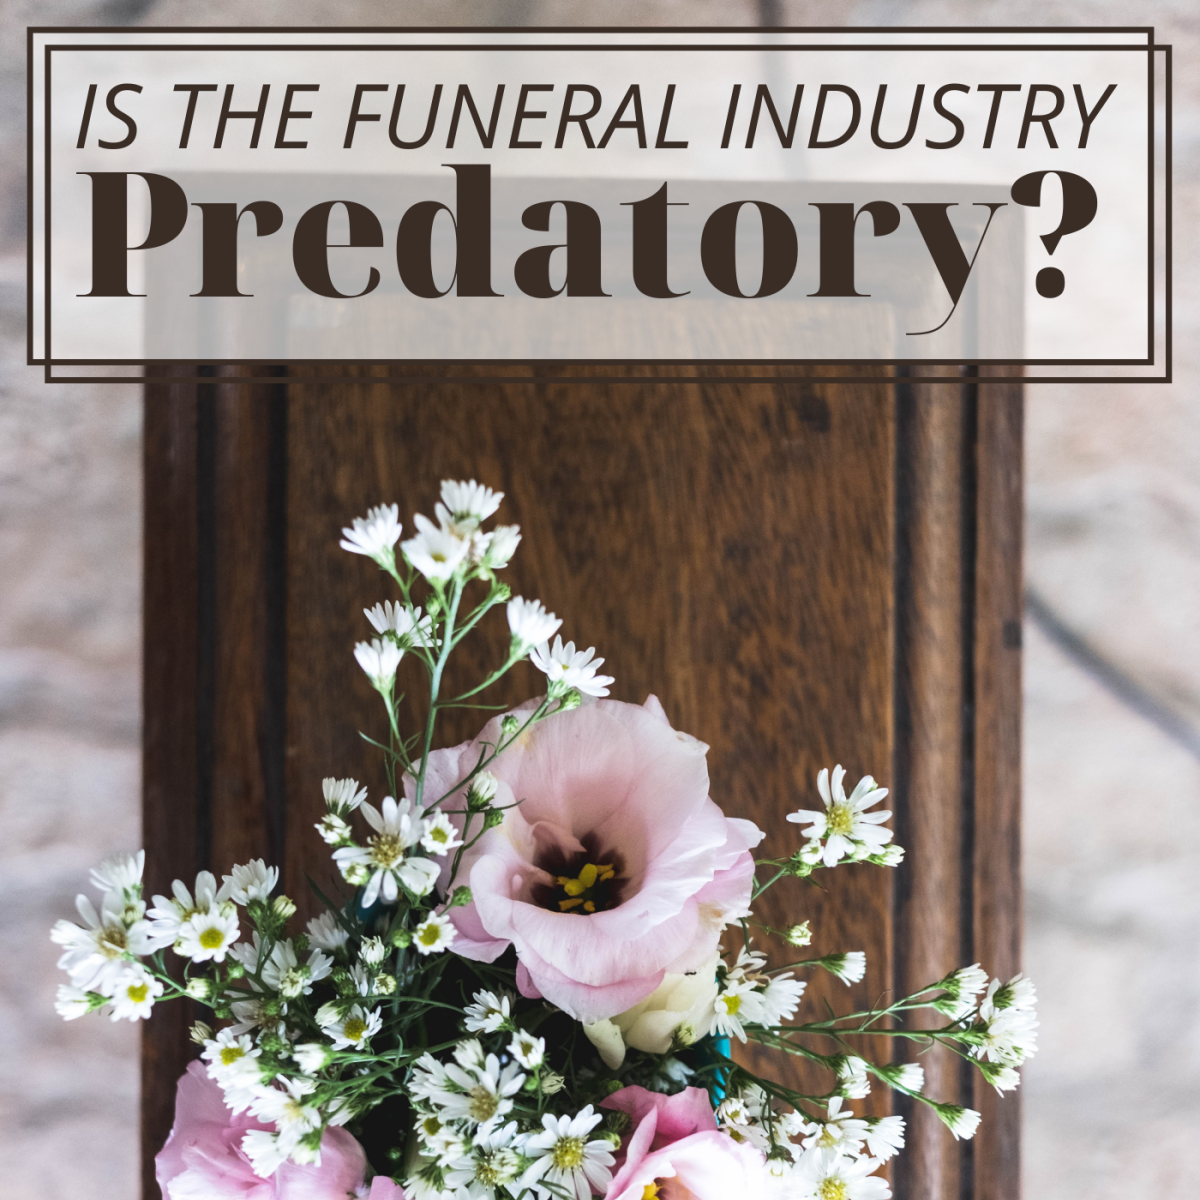 The funeral industry interacts with members of the public during some of their most vulnerable moments.